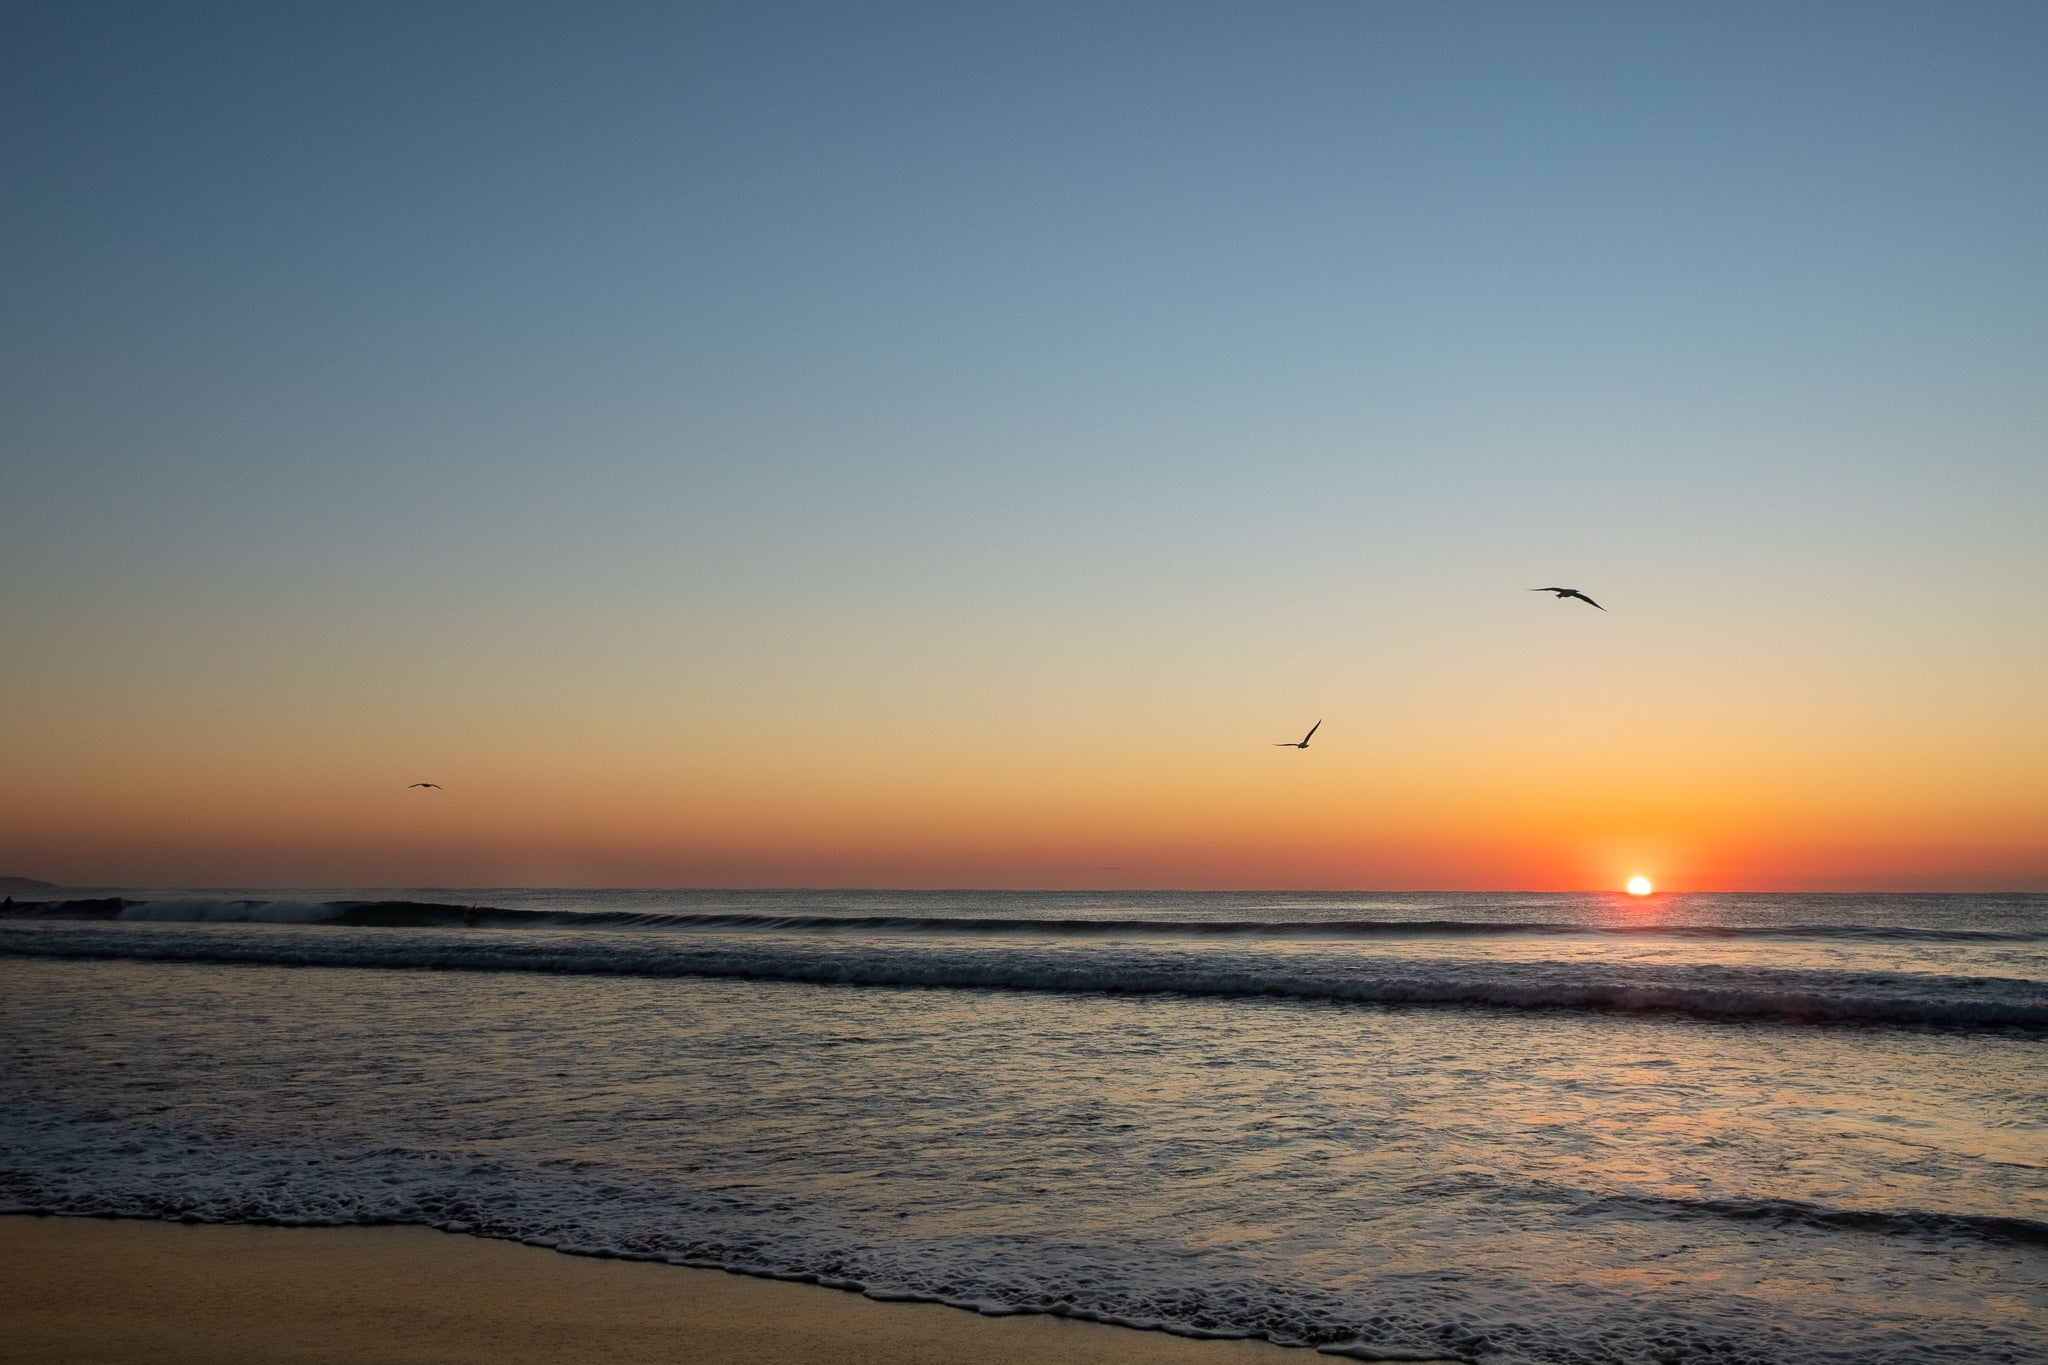 Sunrise photo from the 3rd August 2019 at Manly Beach in Sydney